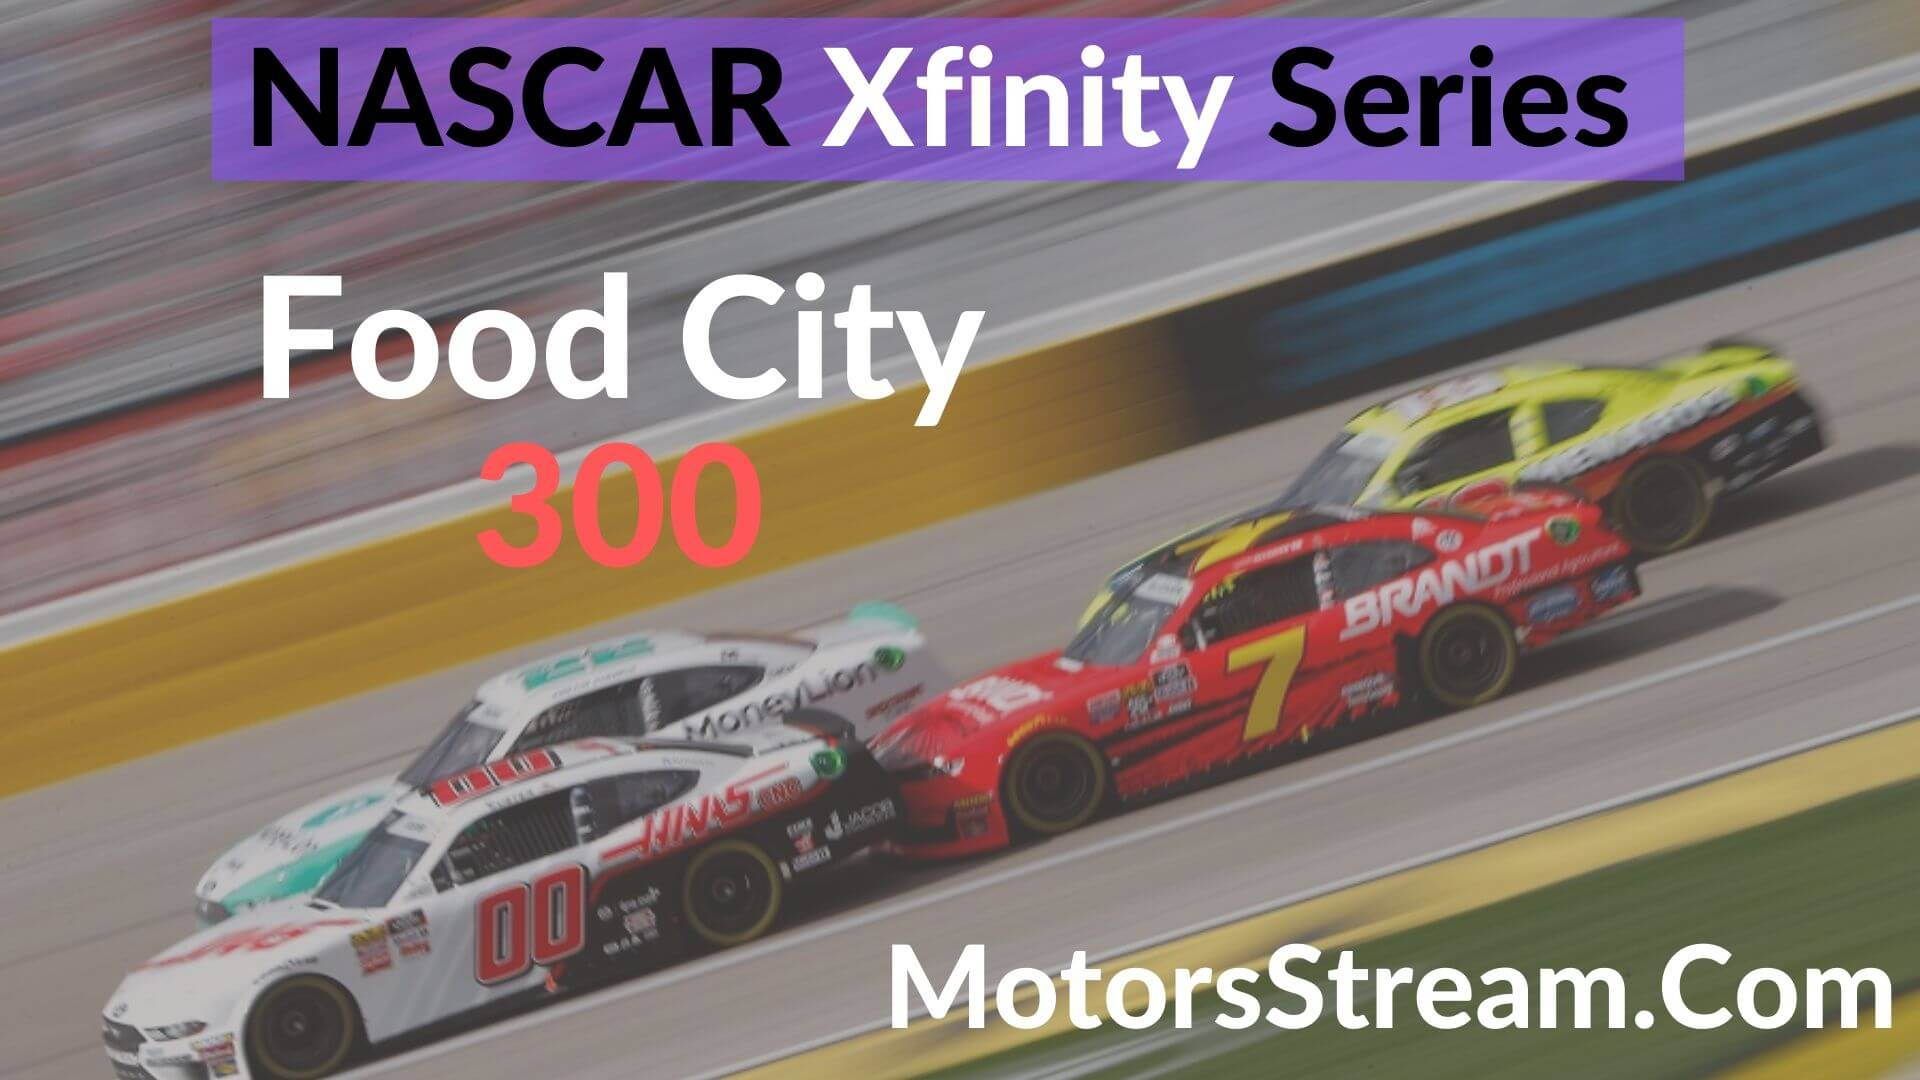 Food City 300 Live Stream | Xfinity Series 2020